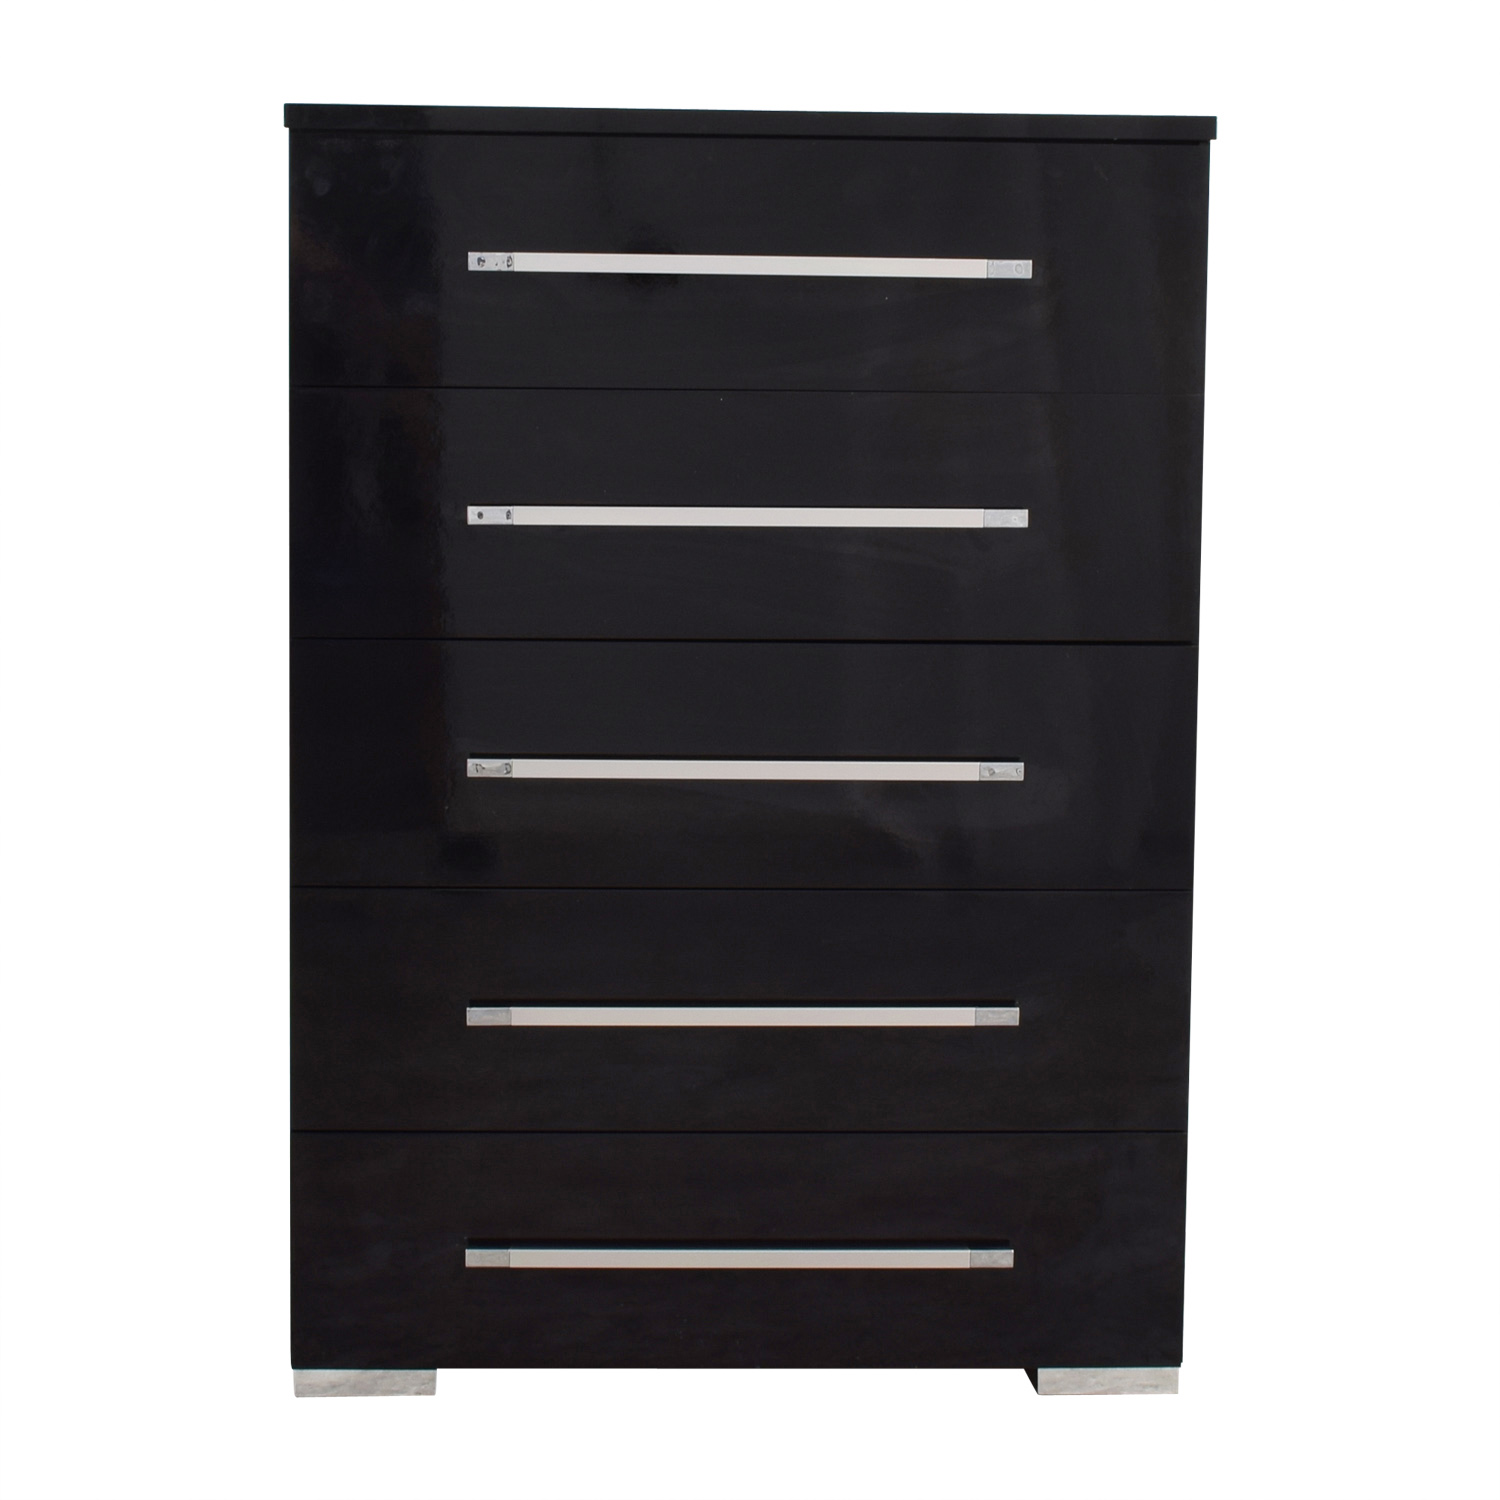 Bobs Furniture Bobs Furniture Black Five-Drawer Tall Chest